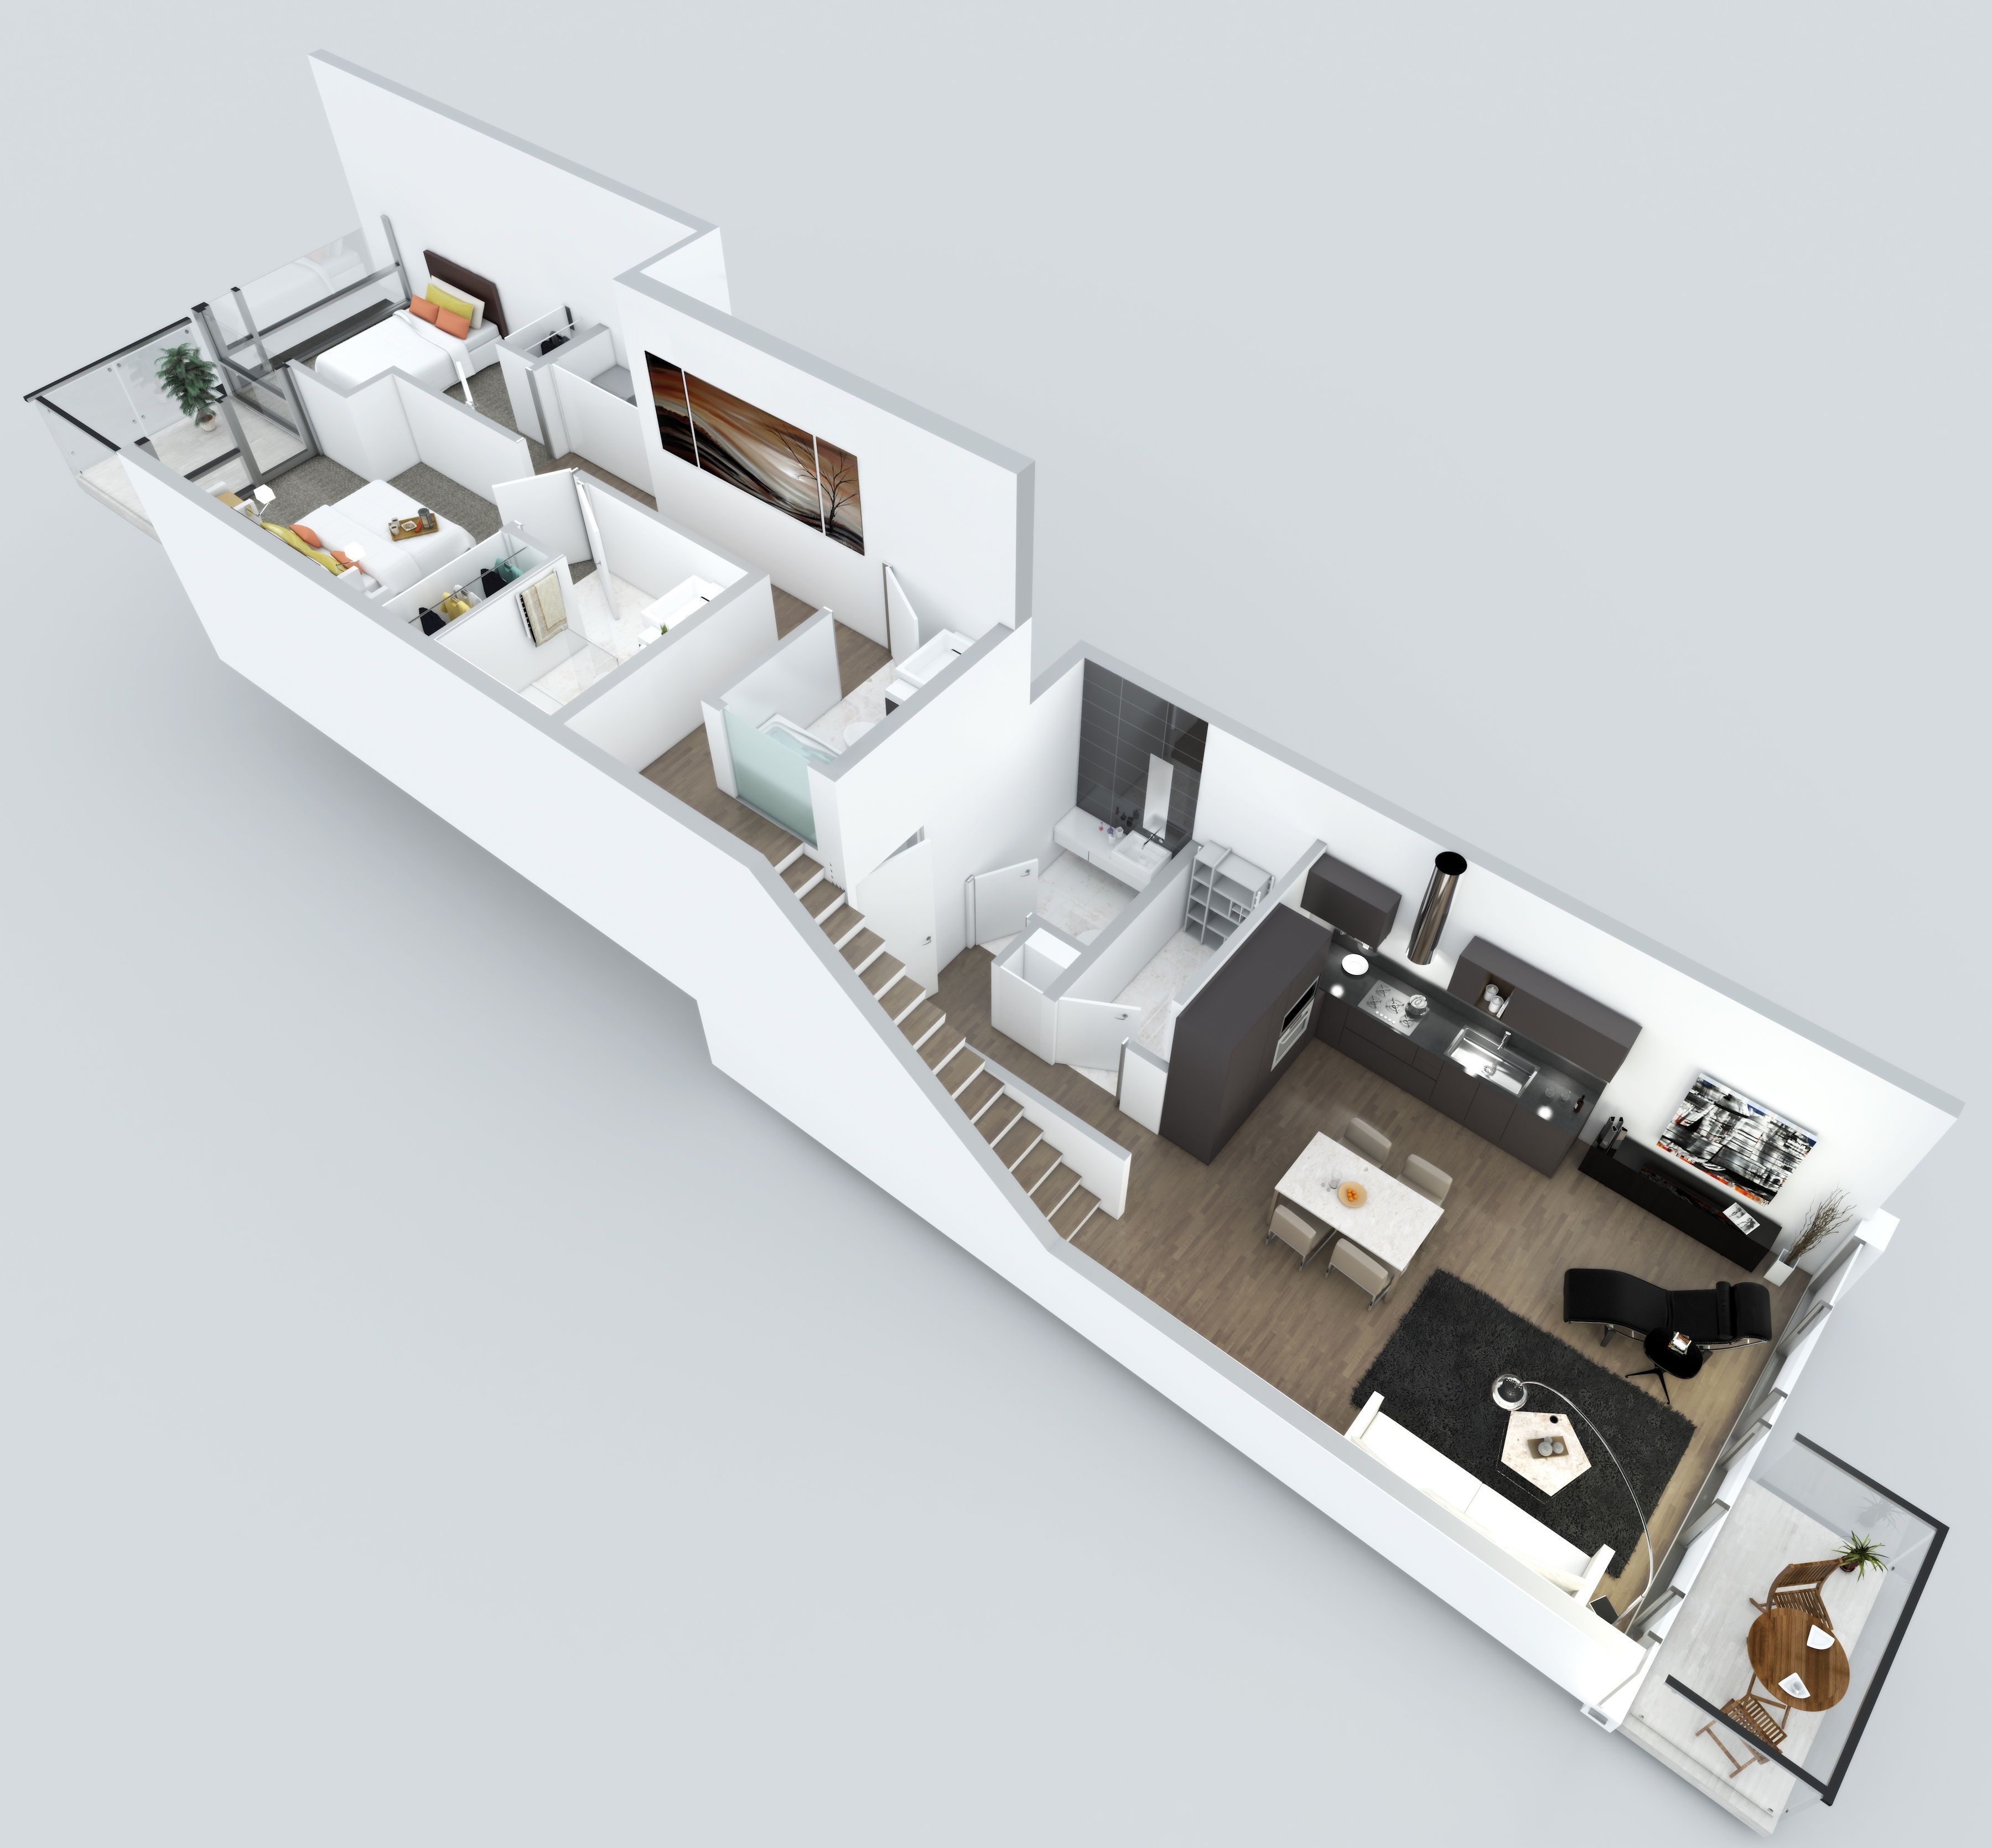 Prime Collection 45 Vancouver Presale Condo Pricing Floor Plans Largest Home Design Picture Inspirations Pitcheantrous